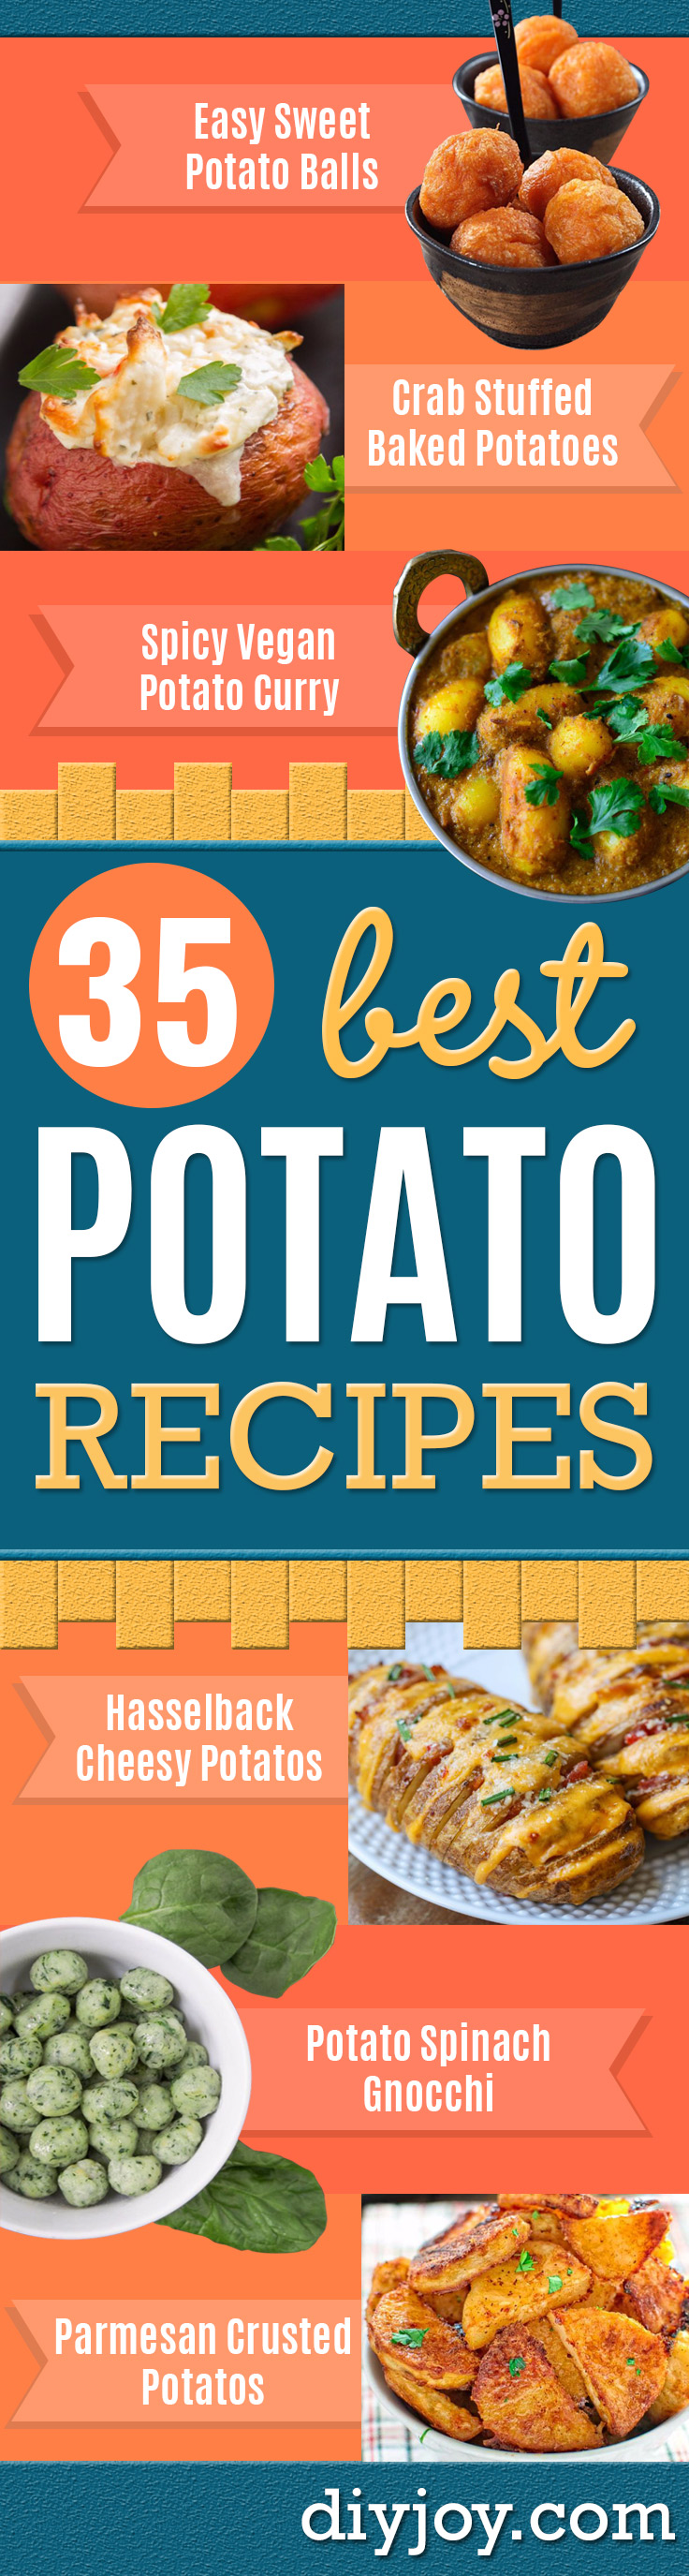 Potato Recipes - Easy, Quick and Healthy Potato Recipes - How To Make Roasted, In Oven, Fried, Mashed and Red Potatoes - Easy Potato Side Dishes and Soup Recipe Ideas for Dinner, Breakfast, Lunch, Appetizer and Snack http://diyjoy.com/potato-recipes